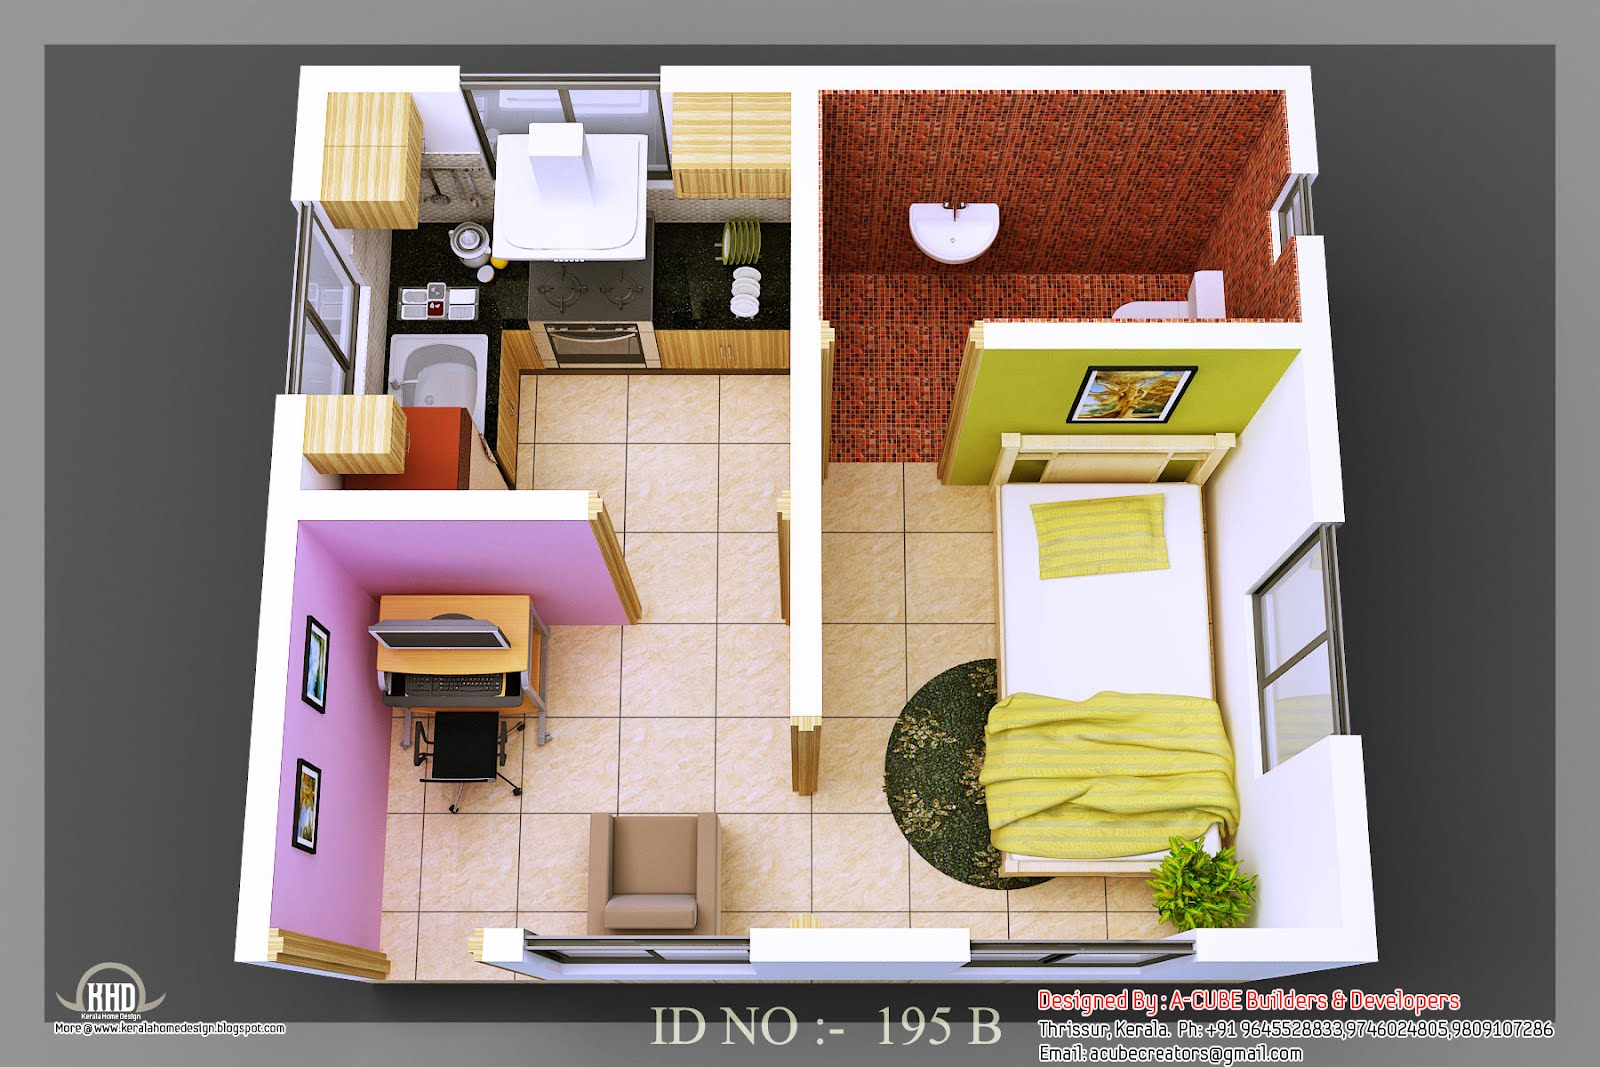 3d isometric views of small house plans a taste in heaven - Small home interior design ...